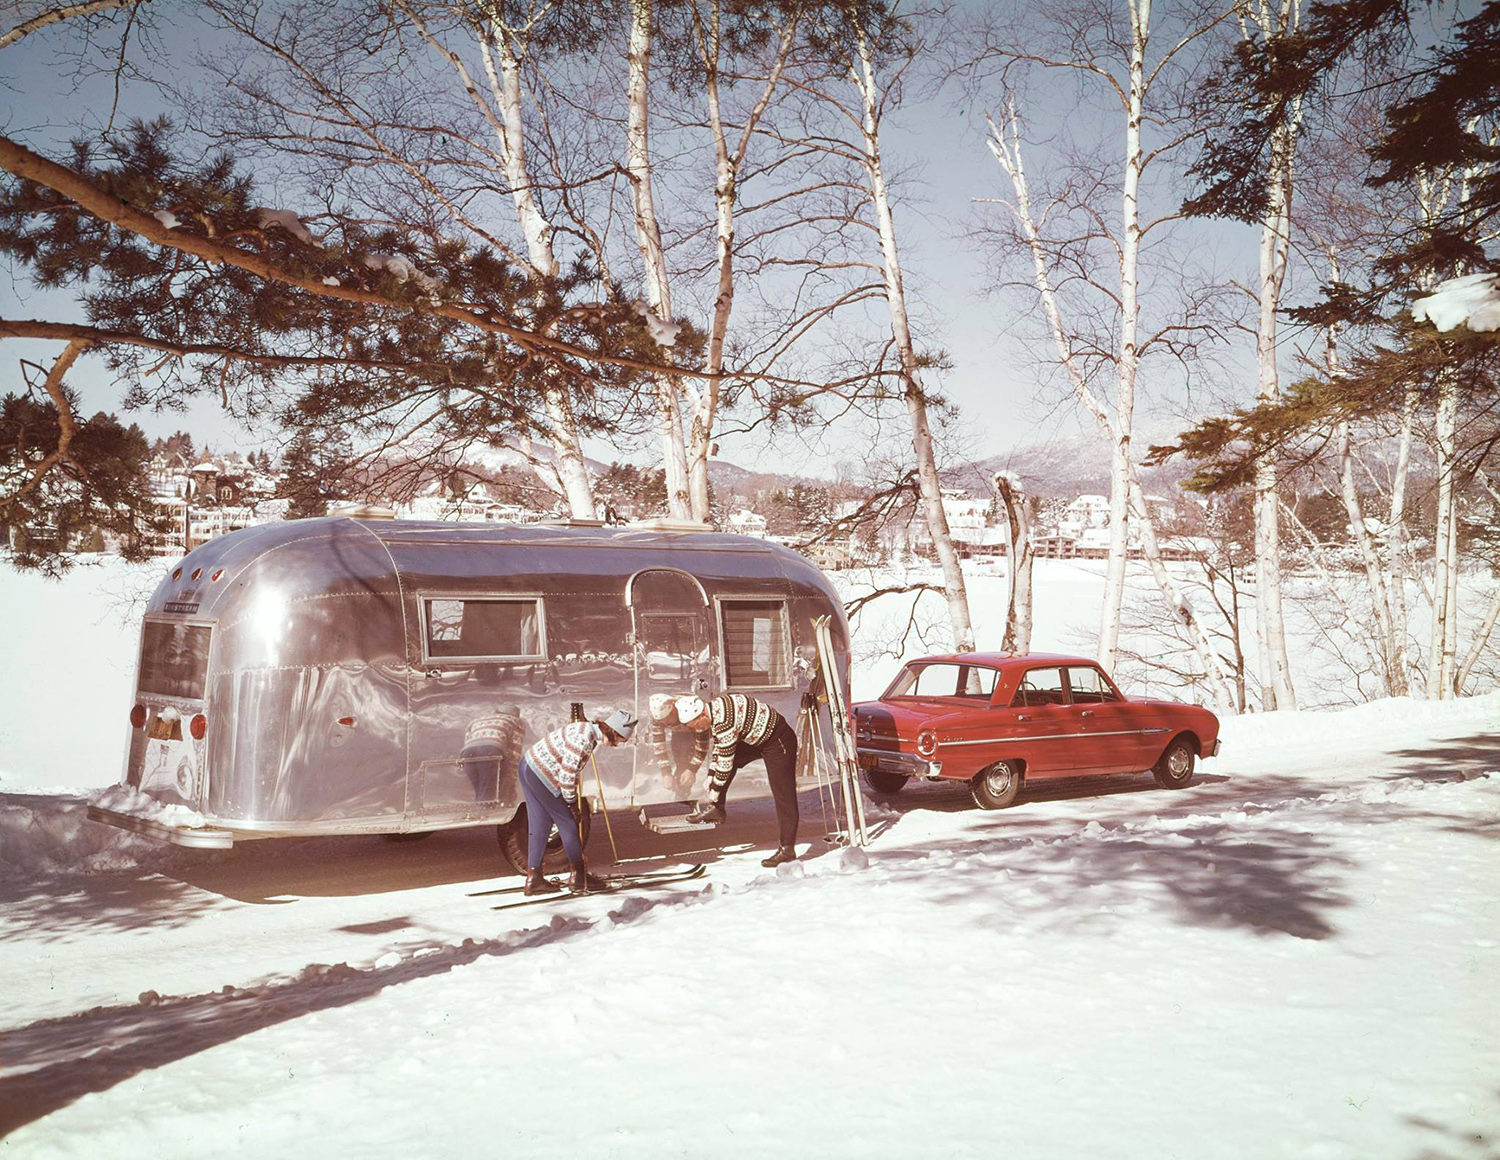 Archival footage of a 1950s airstream being towed through snow